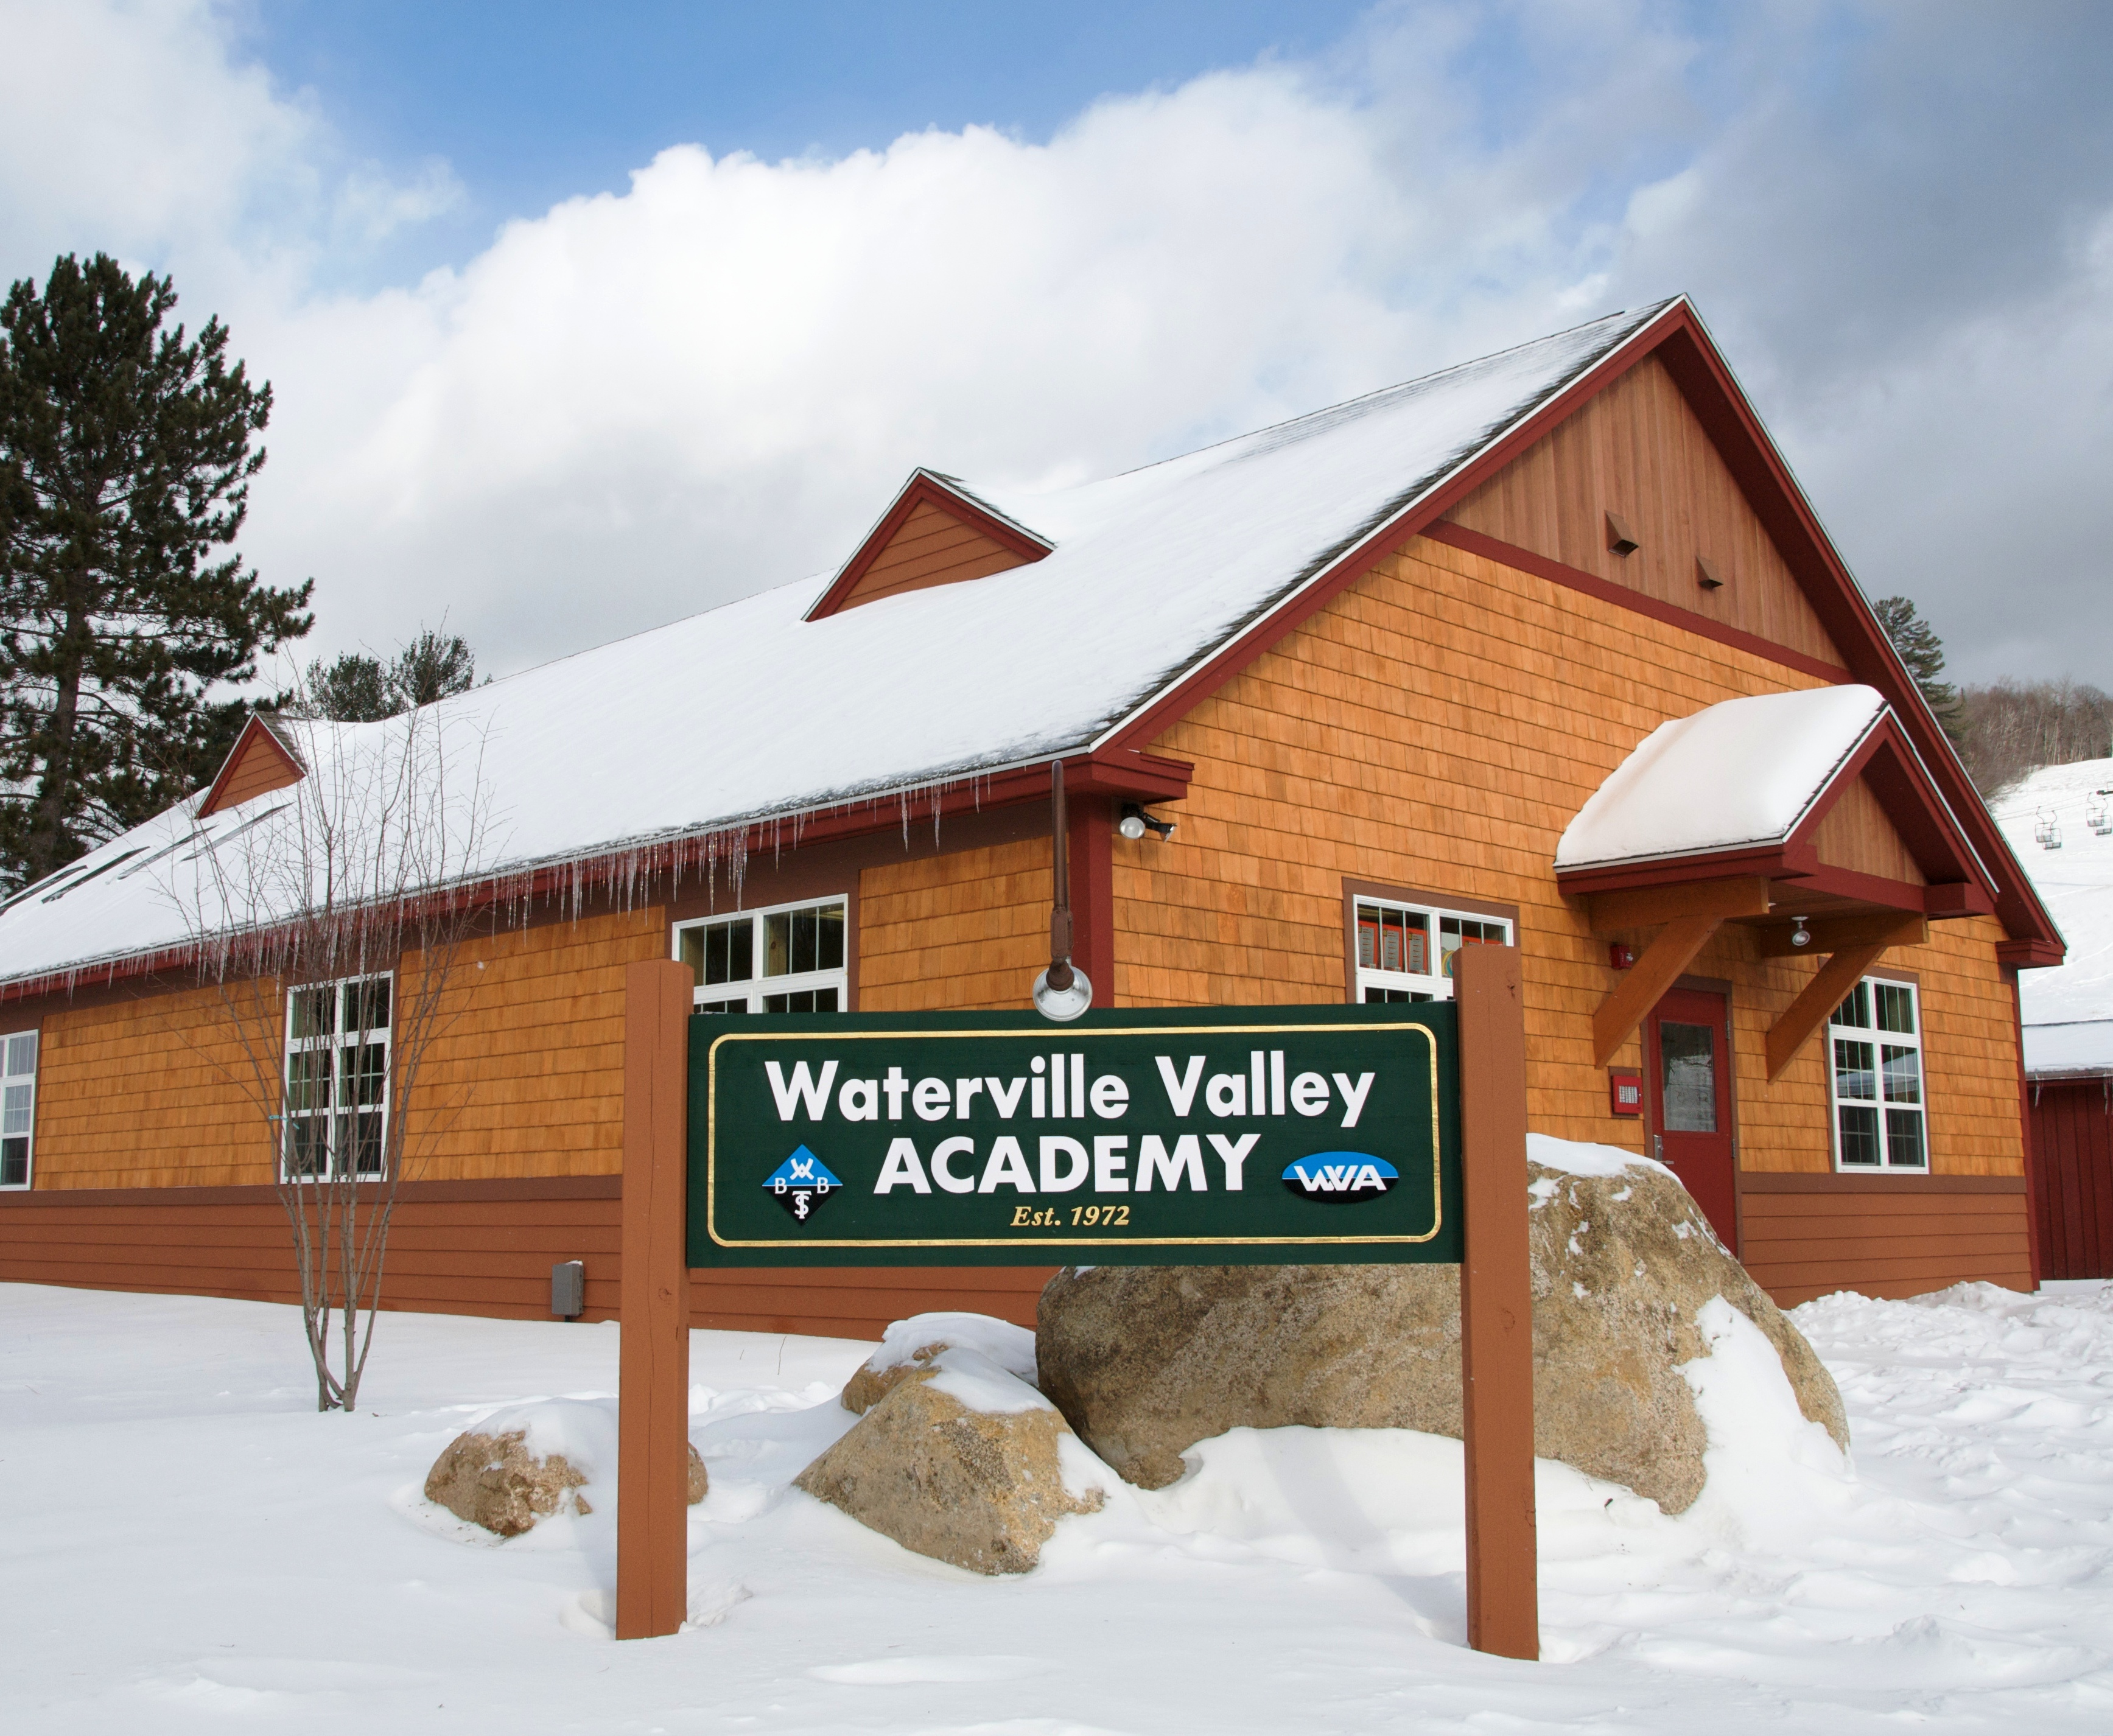 Waterville Valley Academy, Waterville Valley, NH